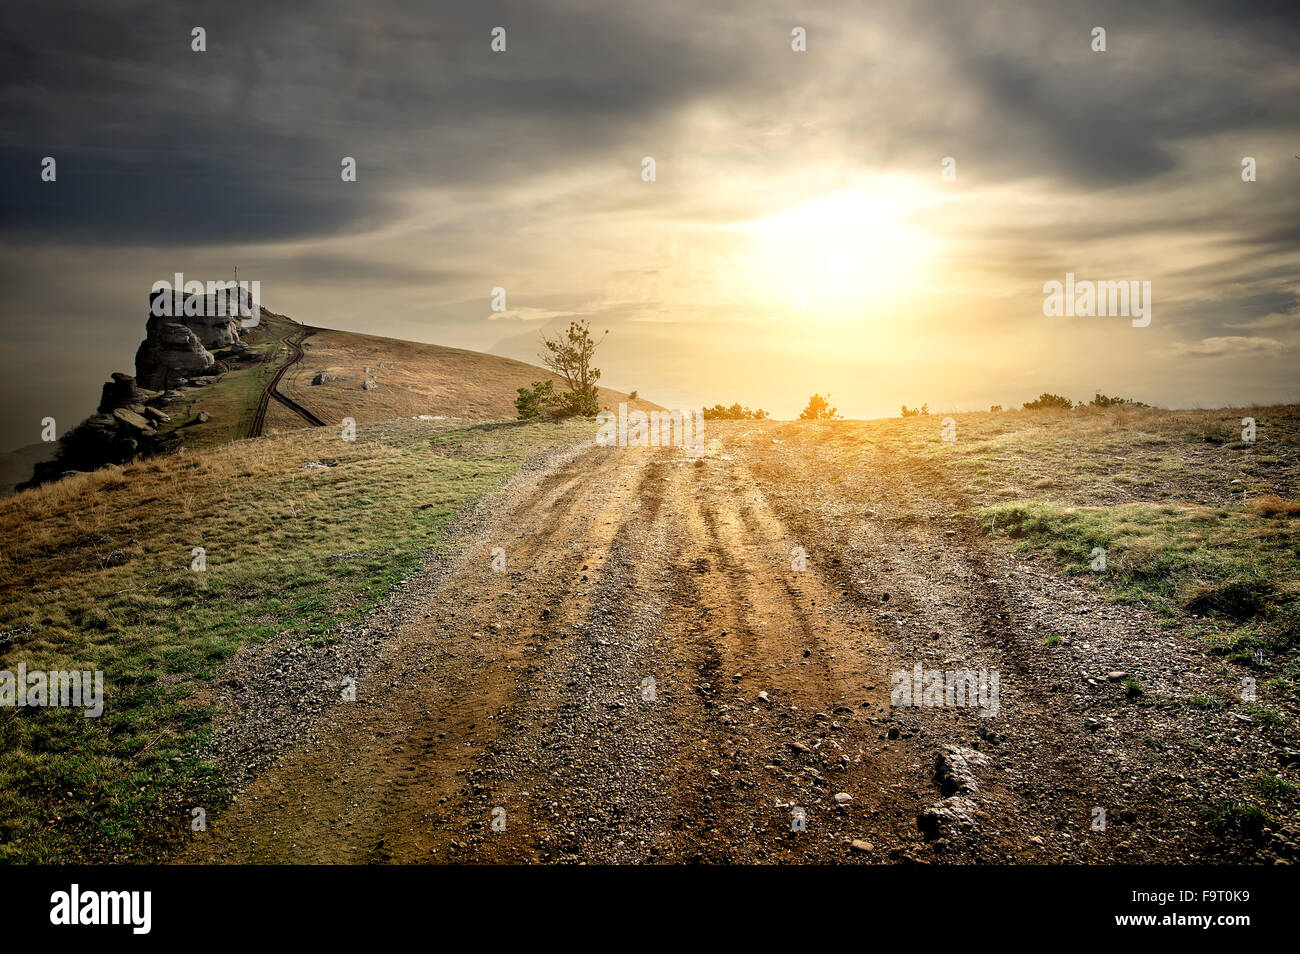 Stony road in mountains at the sunset - Stock Image